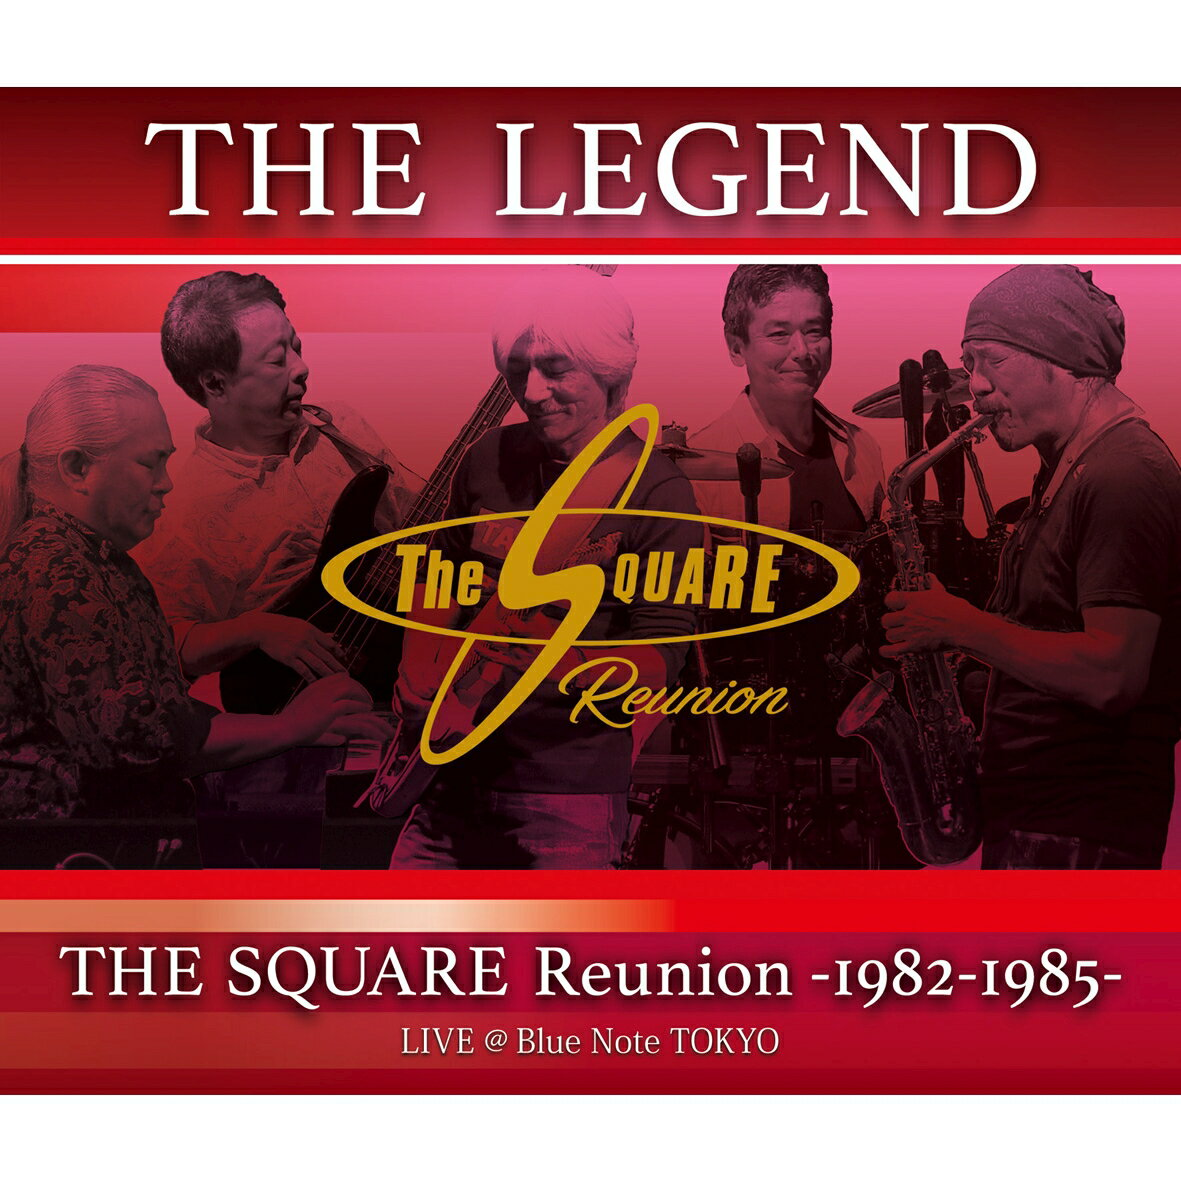 """""""THE LEGEND"""" / THE SQUARE Reunion -1982-1985- LIVE @Blue Note TOKYO【Blu-ray】 [ THE SQUARE Reunion ]"""